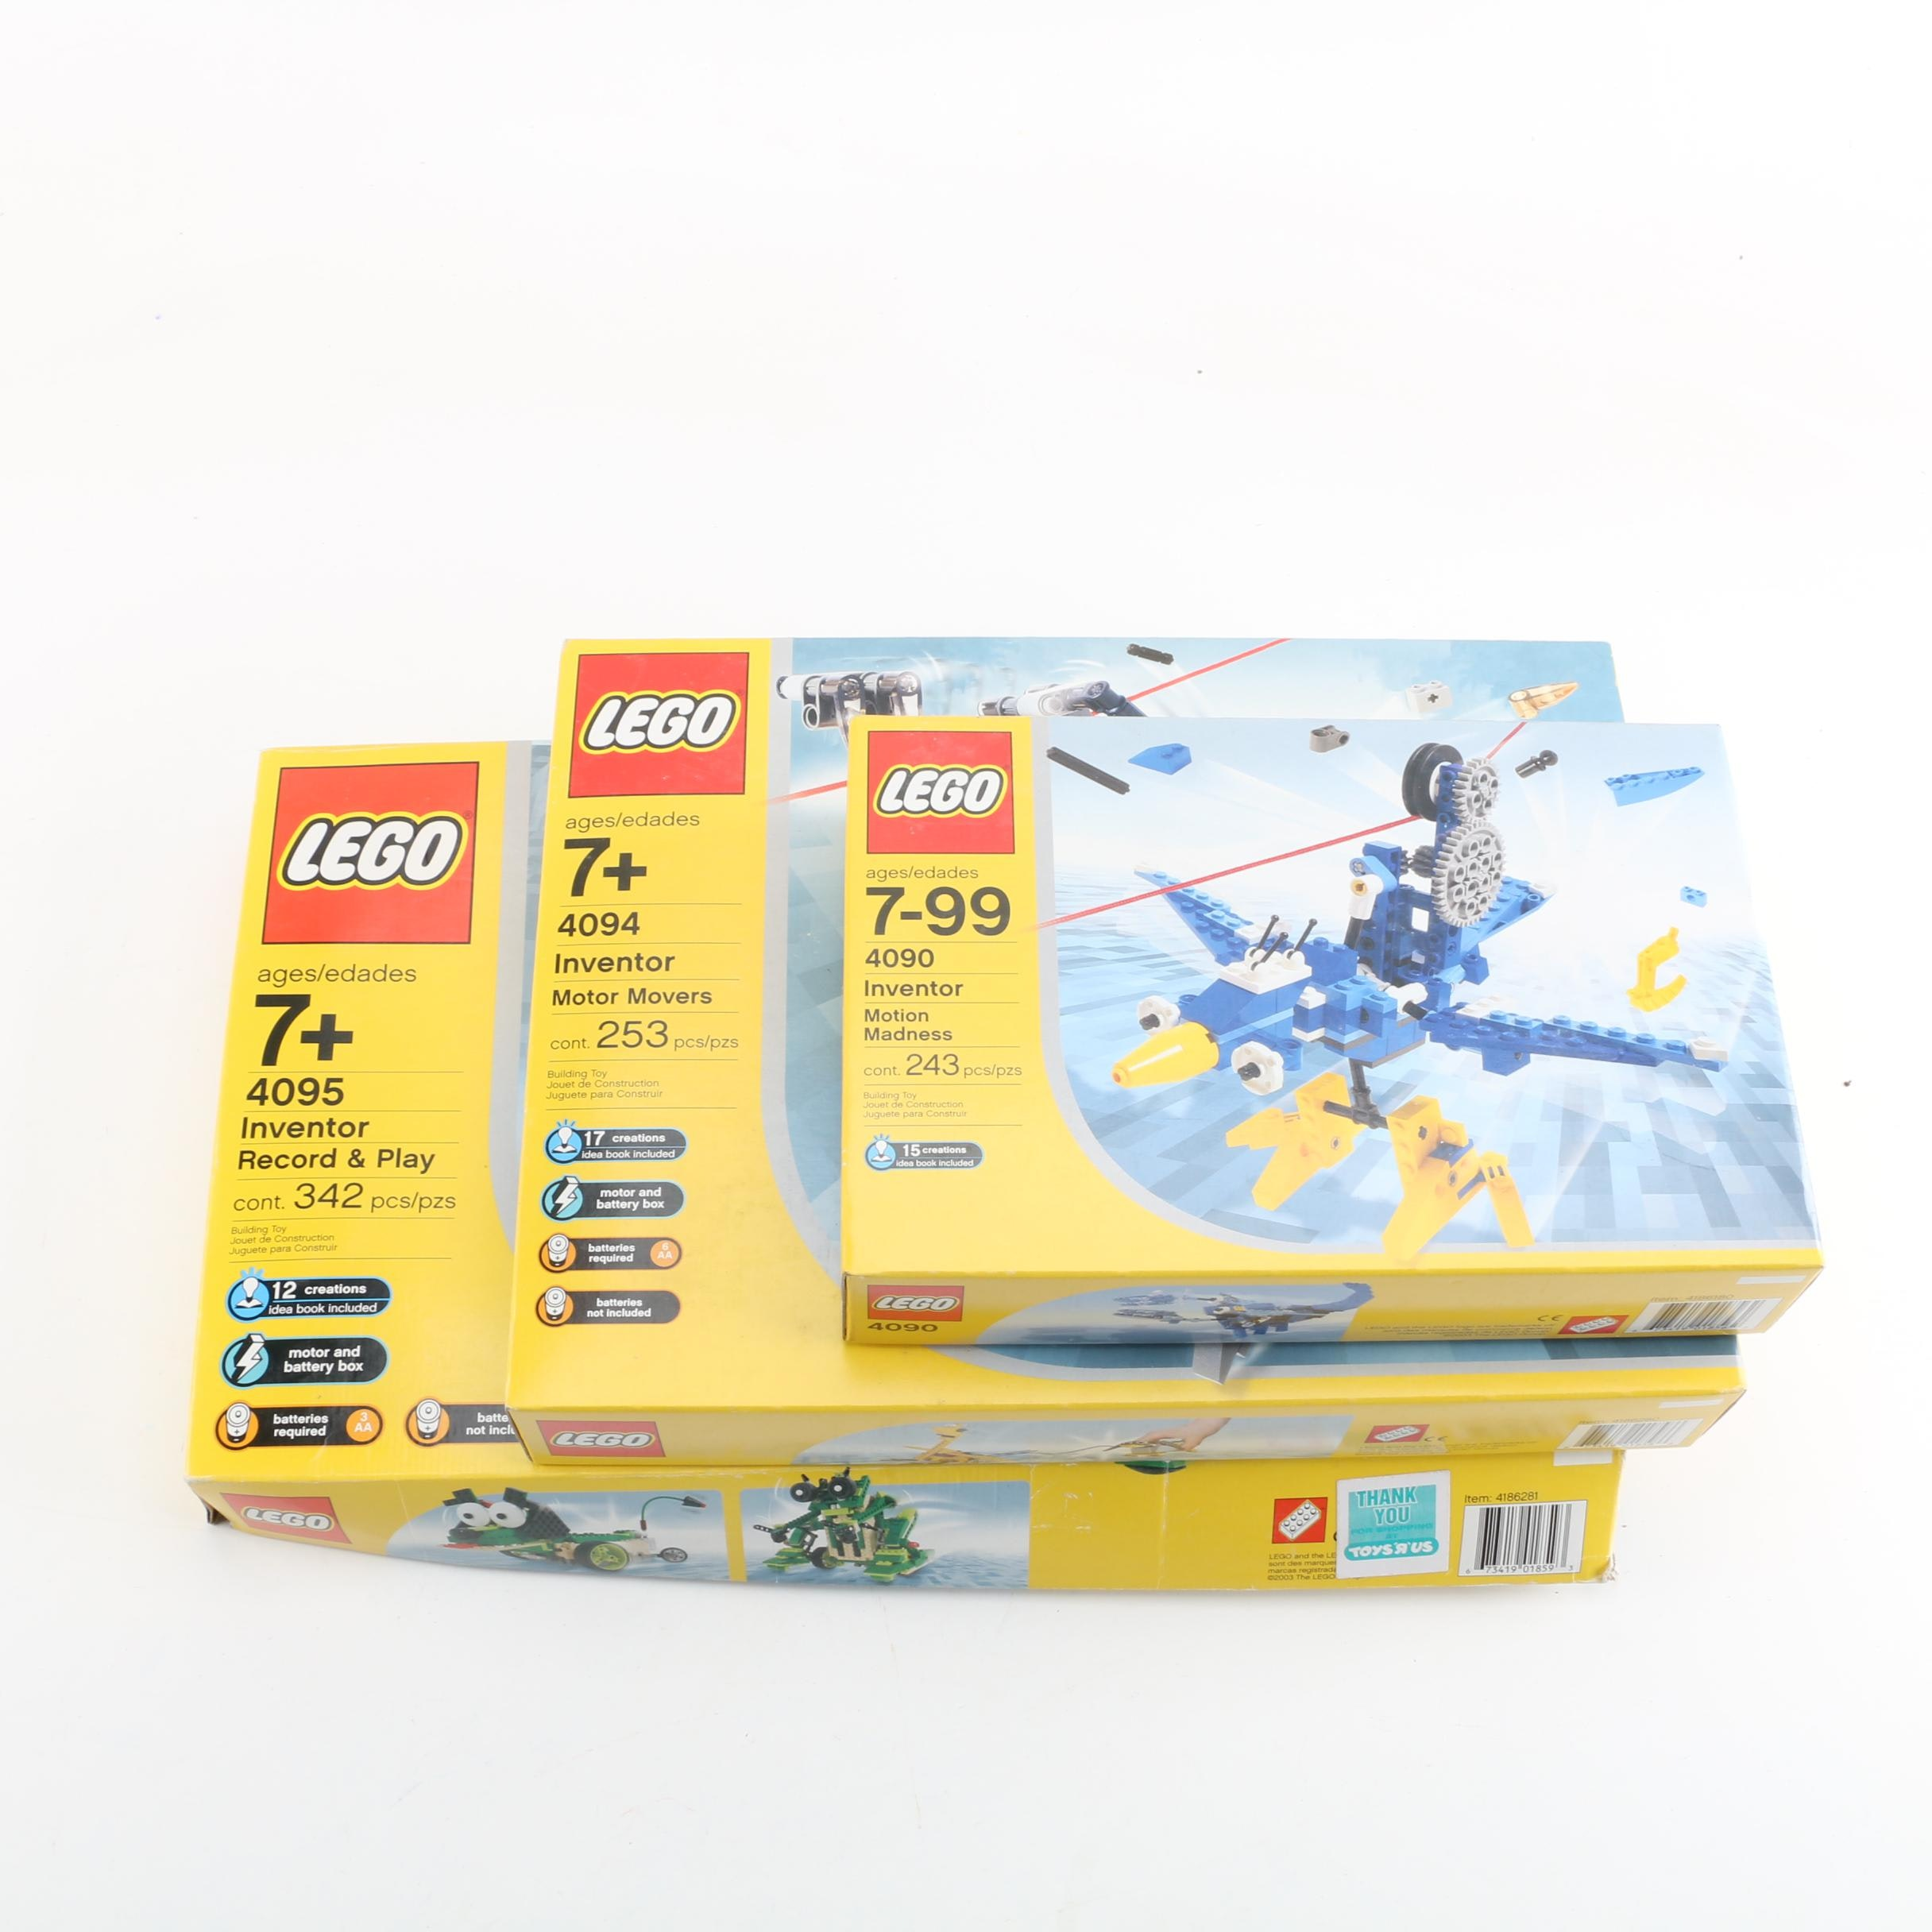 """Lego Inventor"" Sets in Packaging"